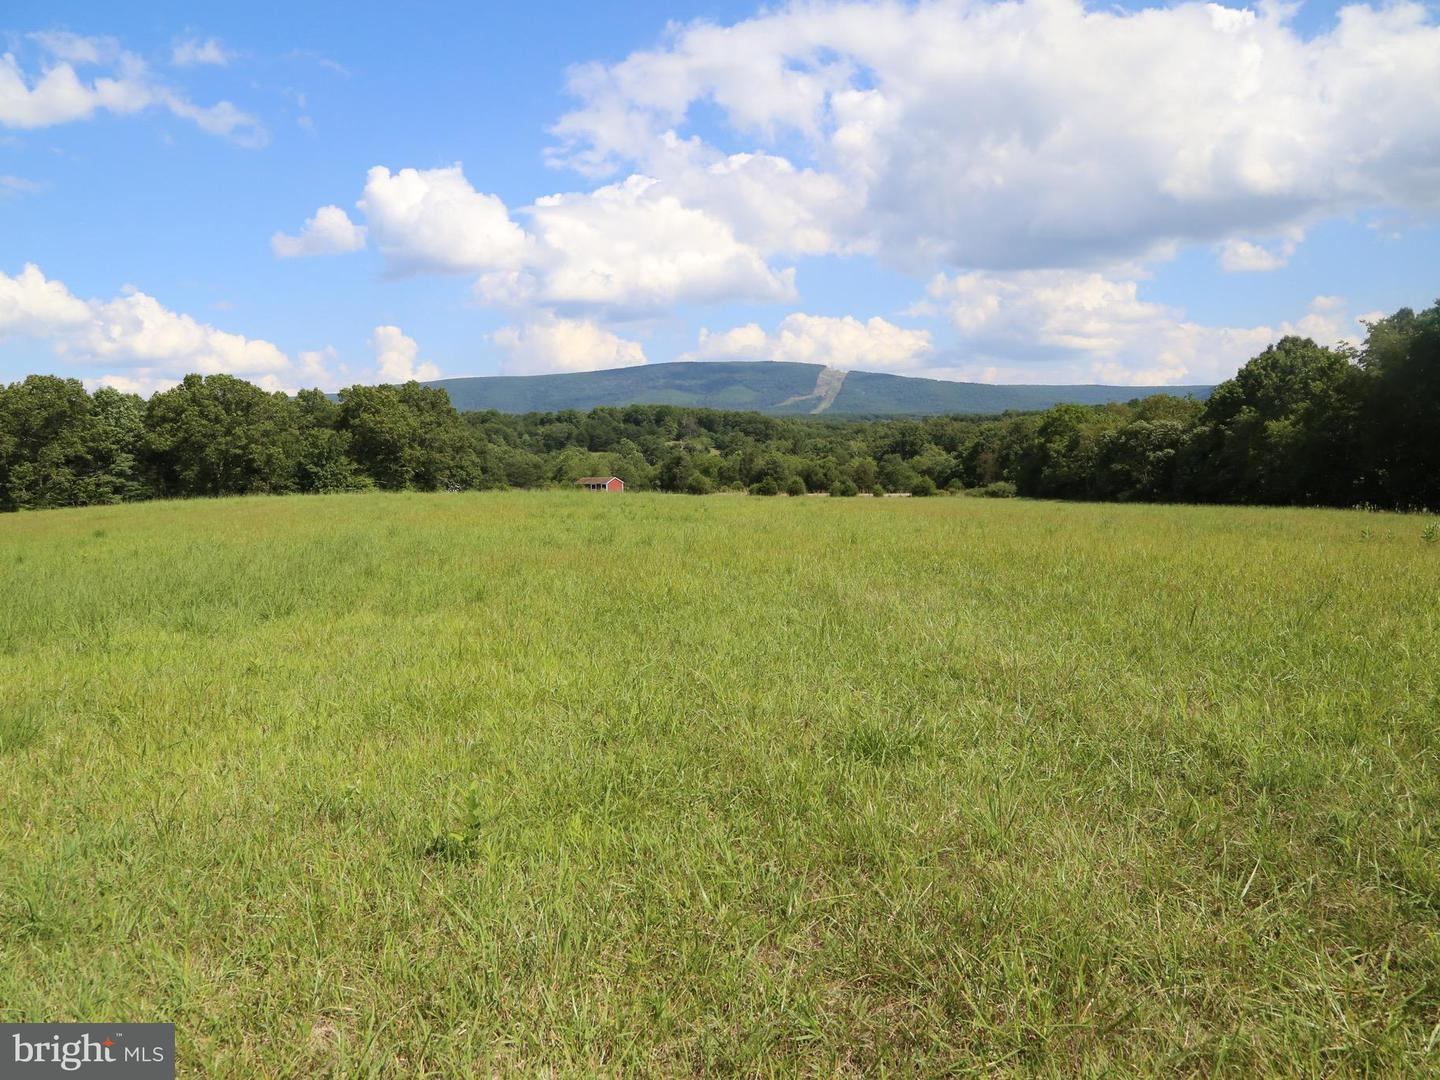 Land for Sale at Spaid Rd Yellow Spring, West Virginia 26865 United States